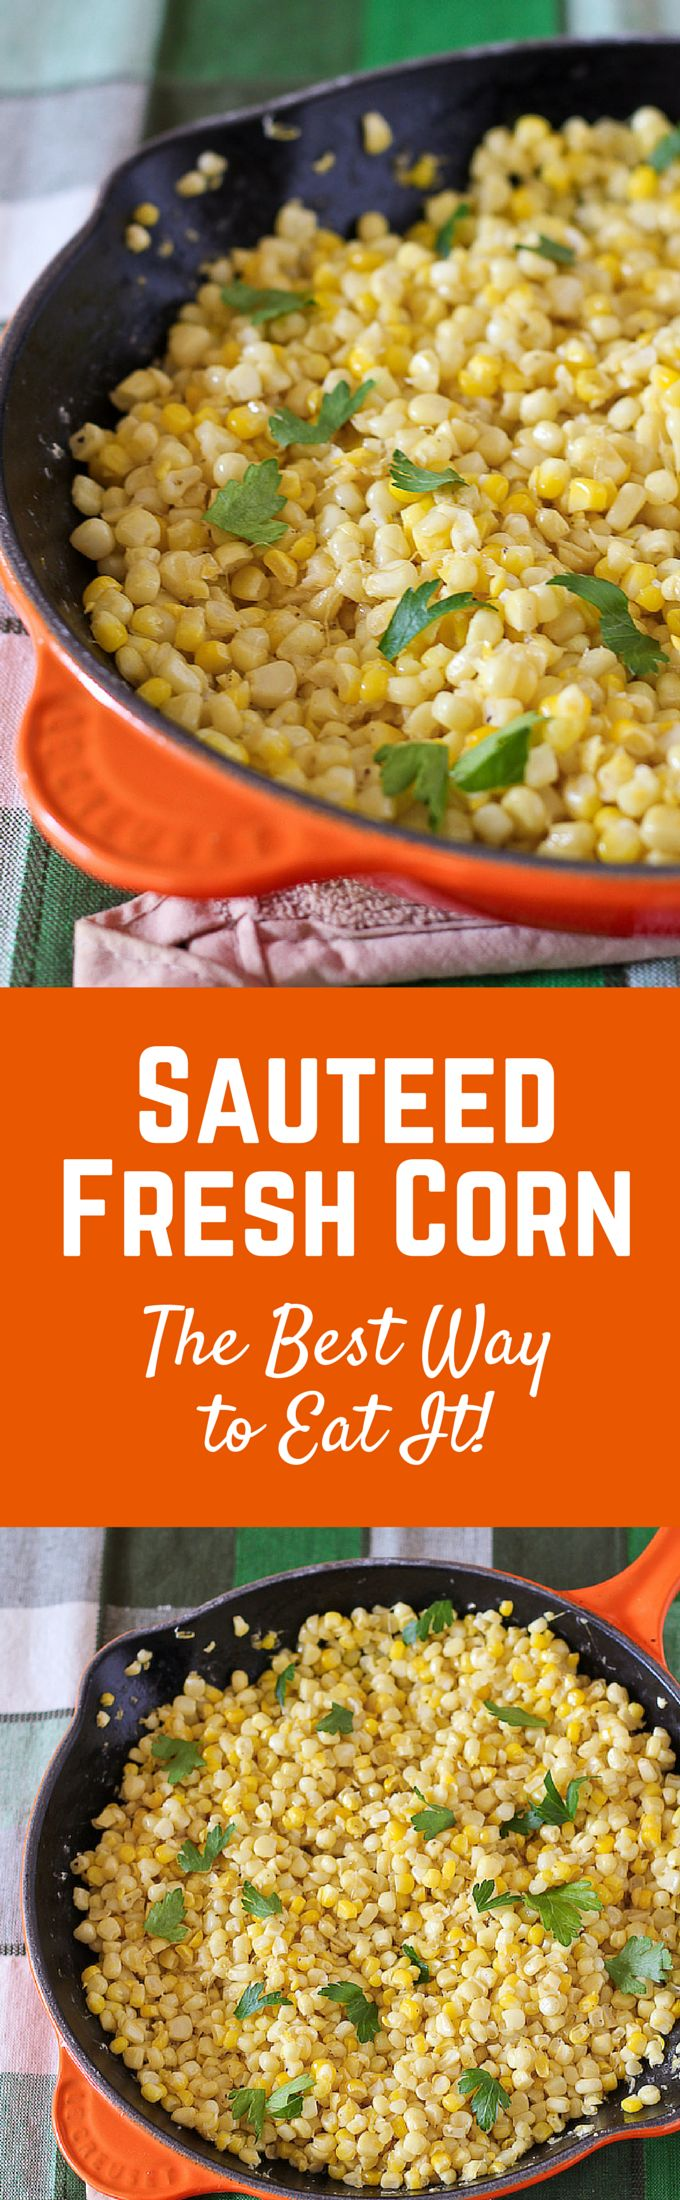 This sauteed fresh corn recipe is an easy and delicious side dish - everyone who has tasted it says it's their new favorite way to eat corn! Get the easy recipe on RachelCooks.com!